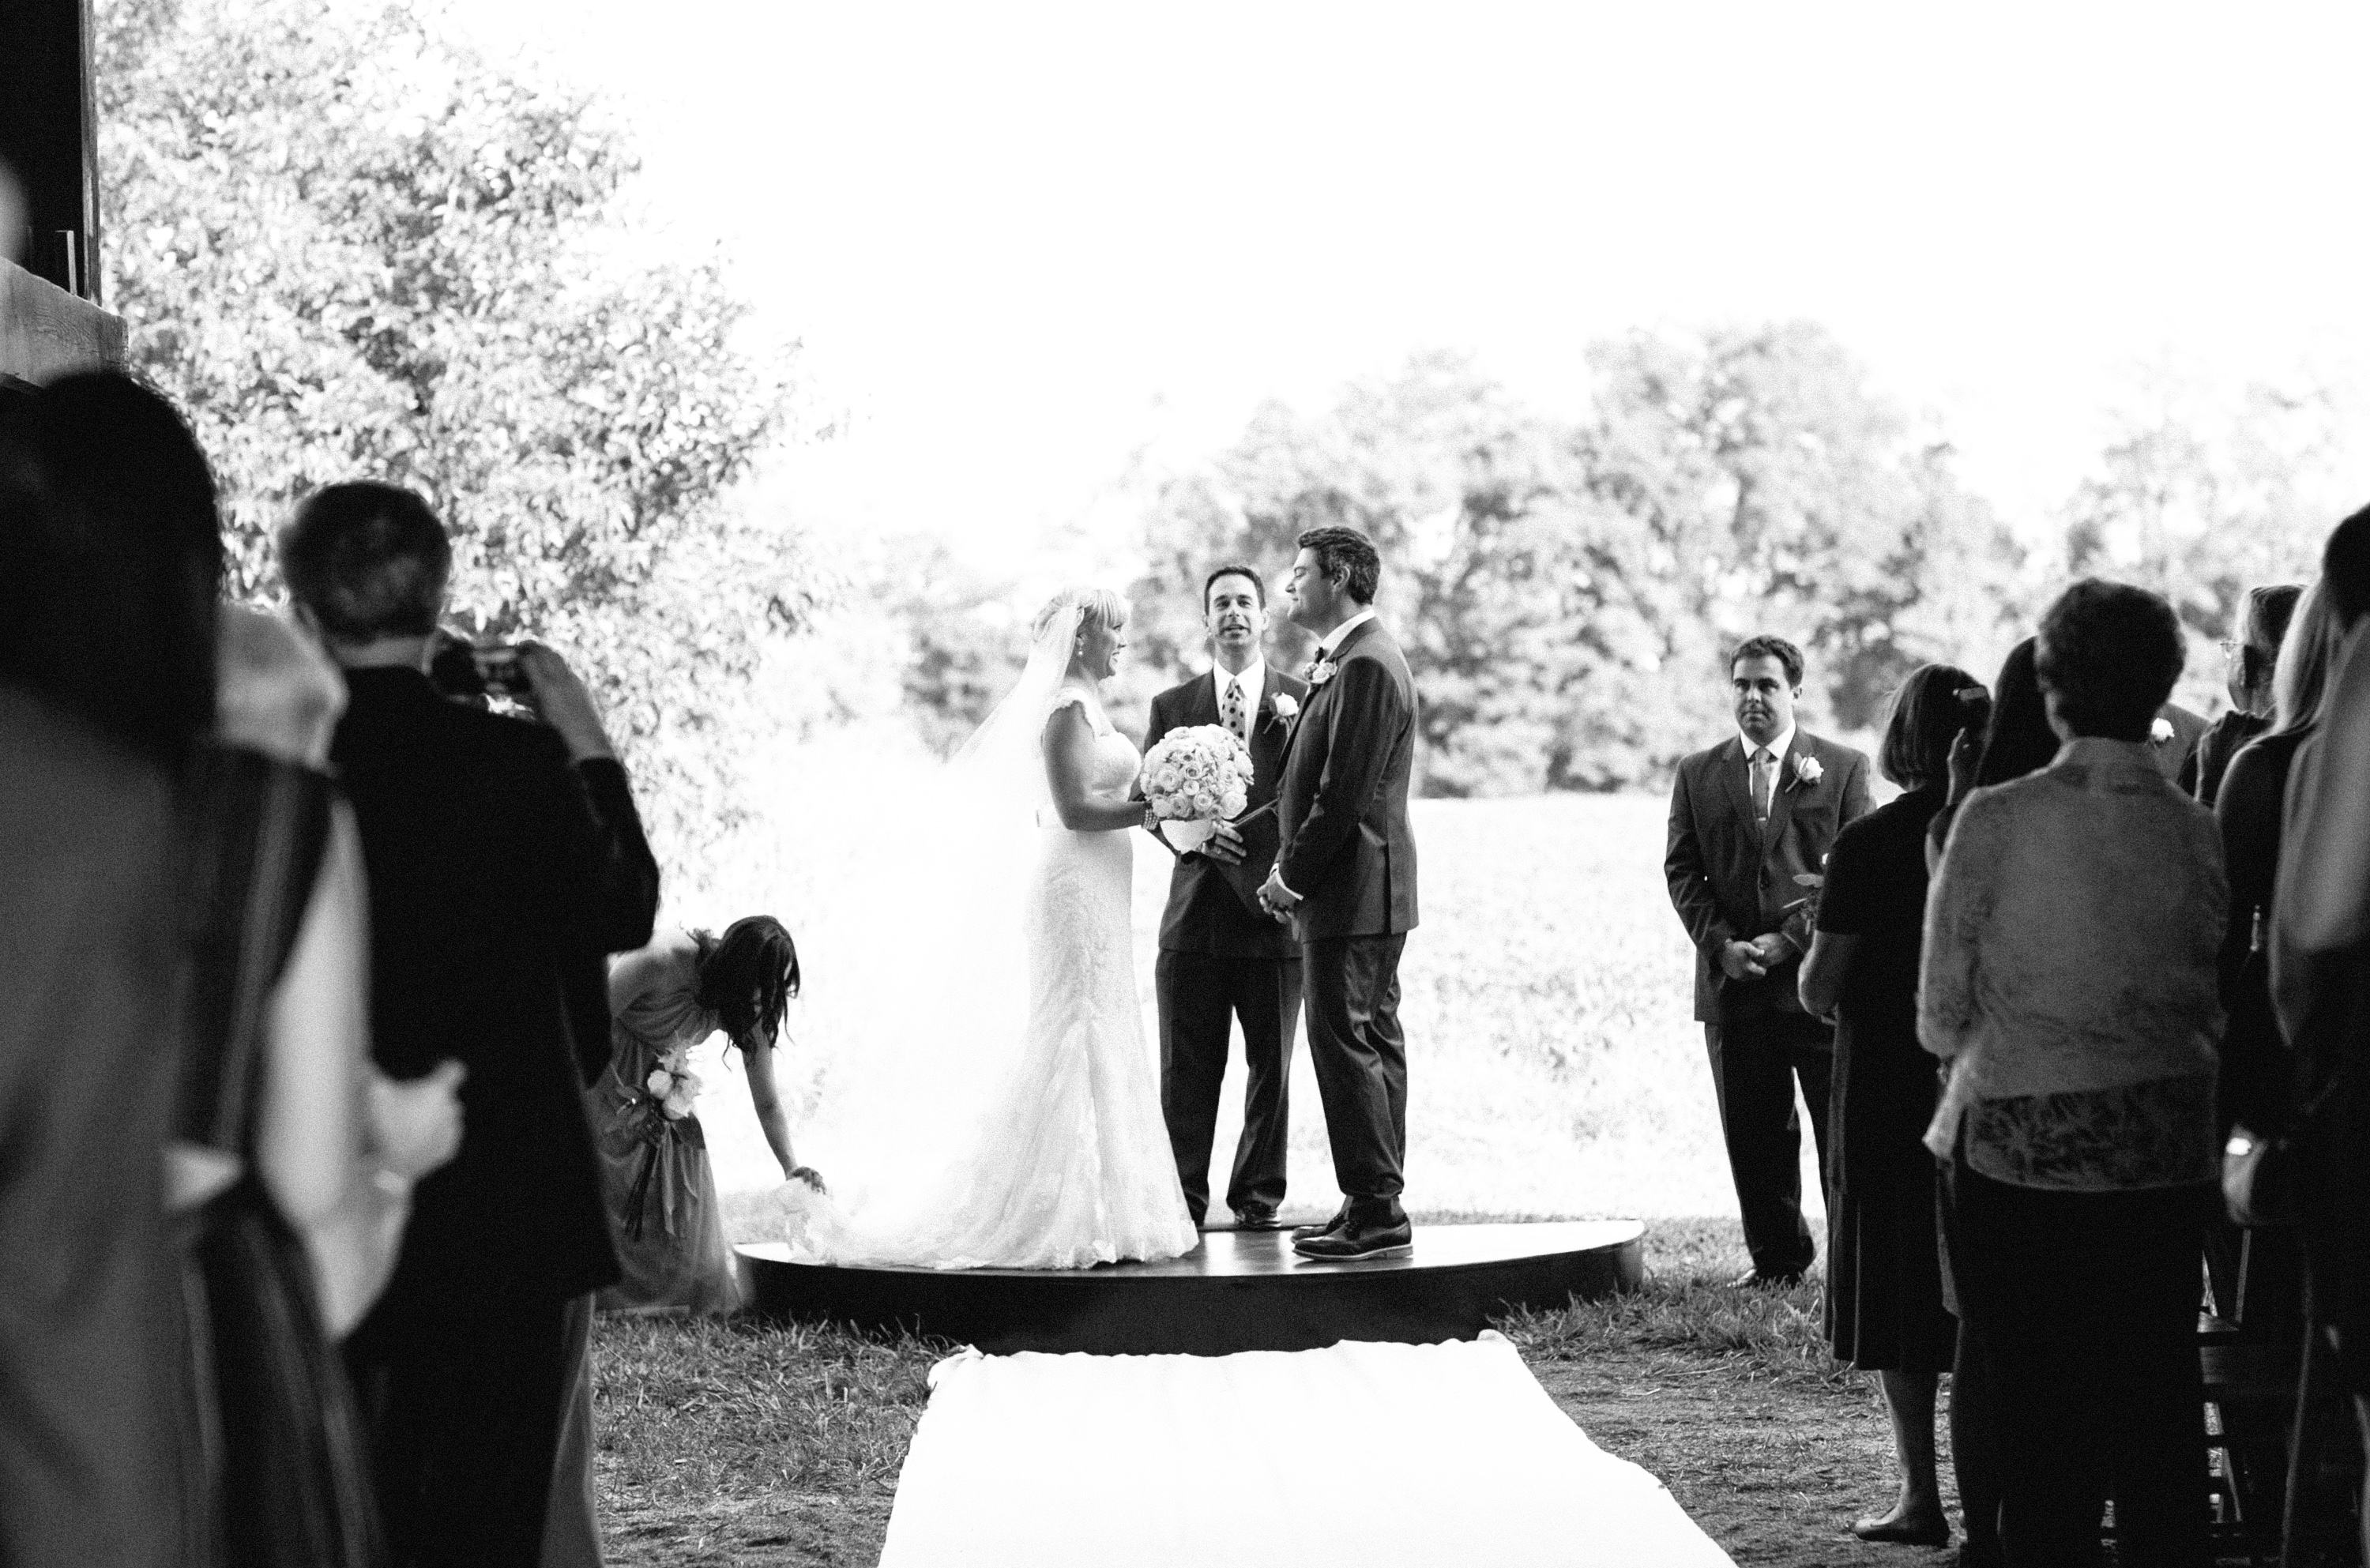 View from Ceremony Barn